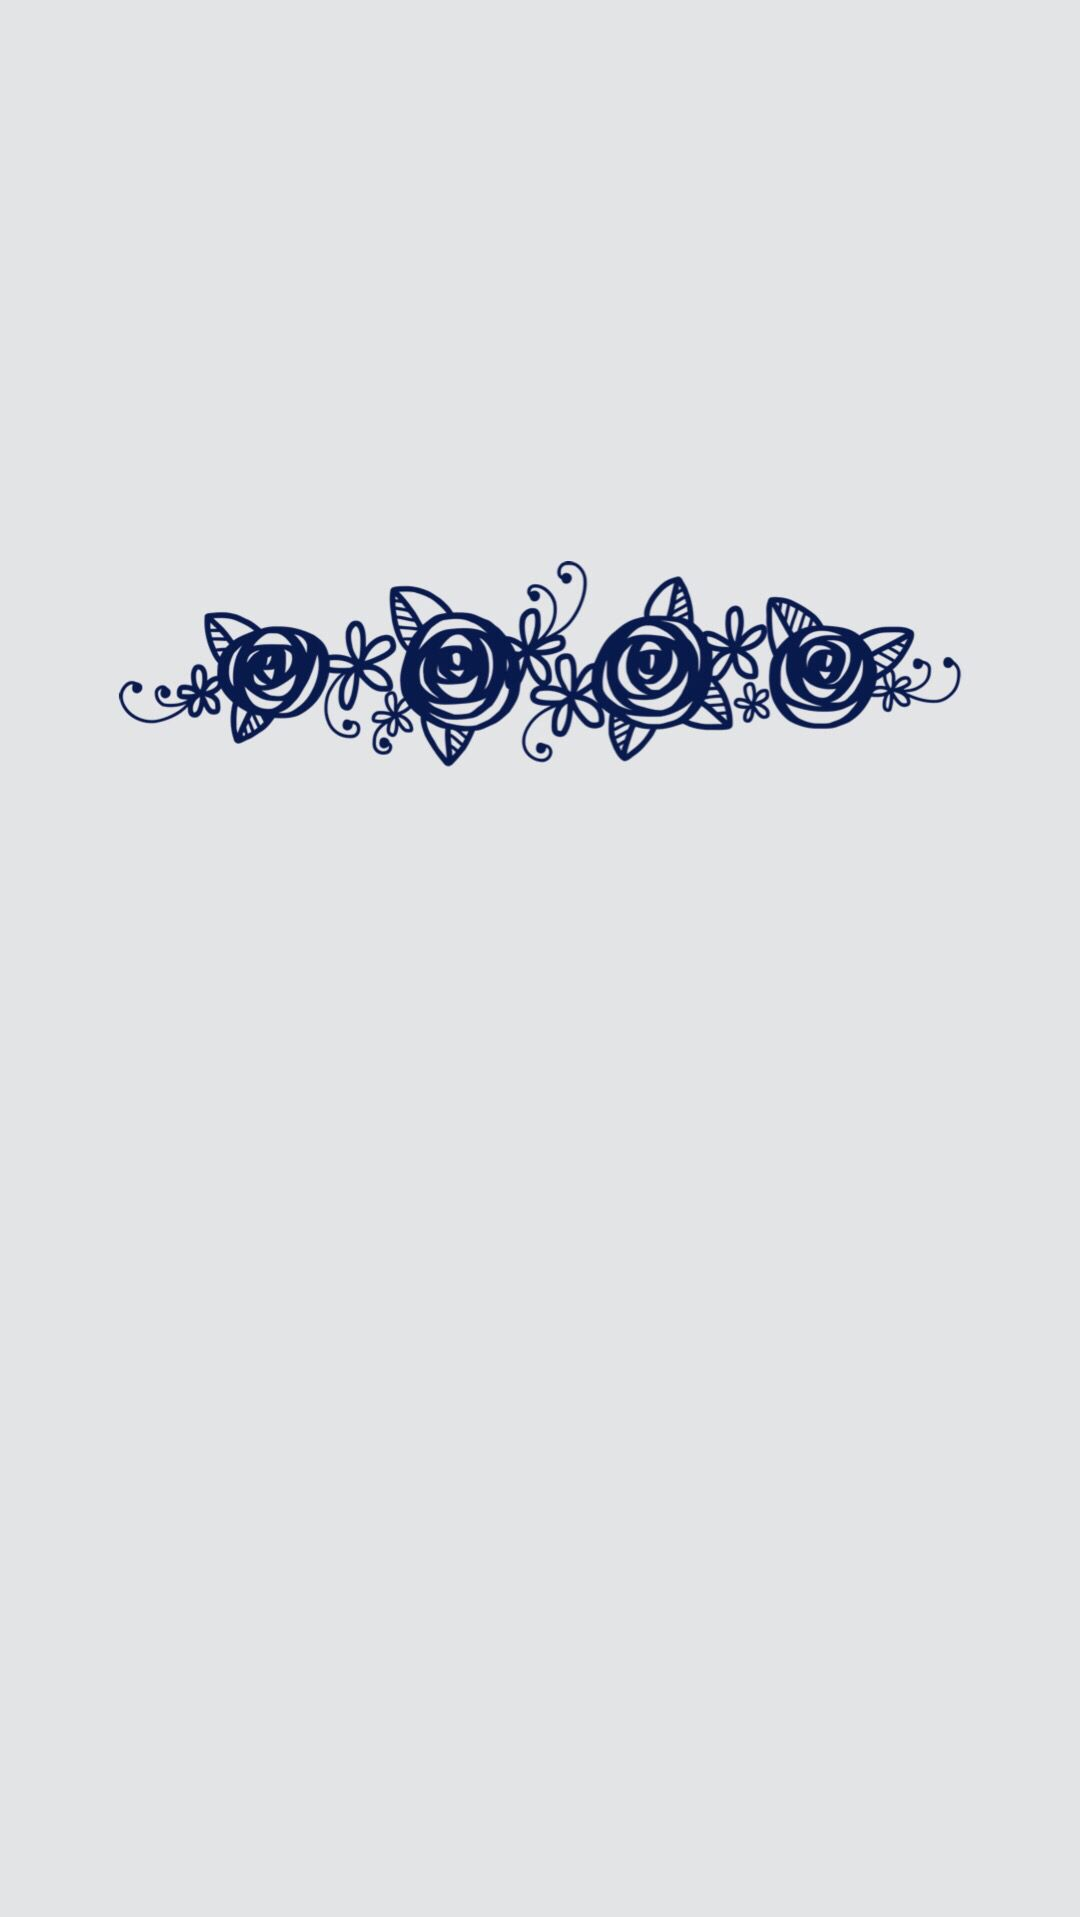 iPhone 6 Plus lock screen wallpaper Minimal gray with blue flowers